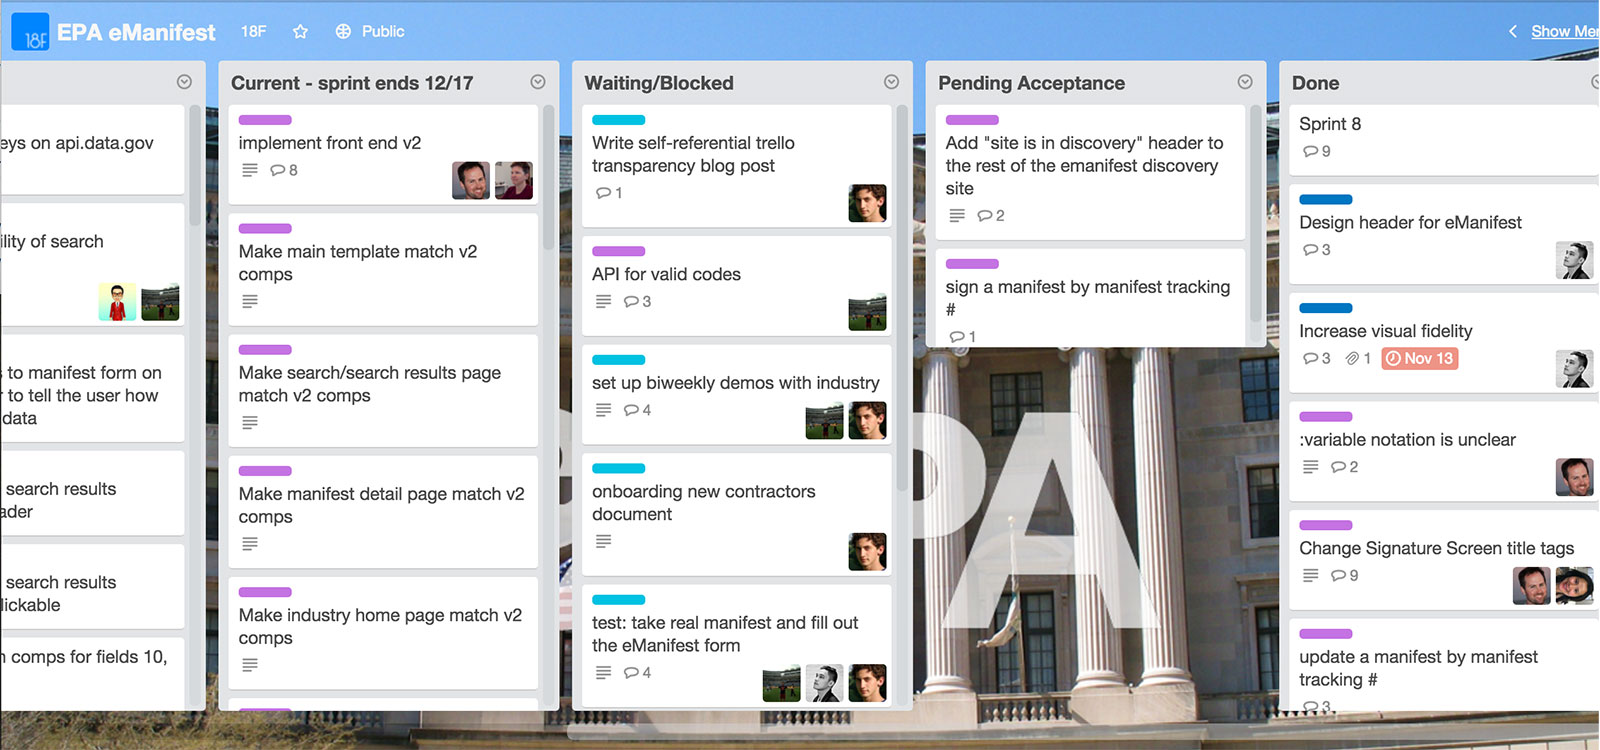 The public Trello board for the e-Manifest project